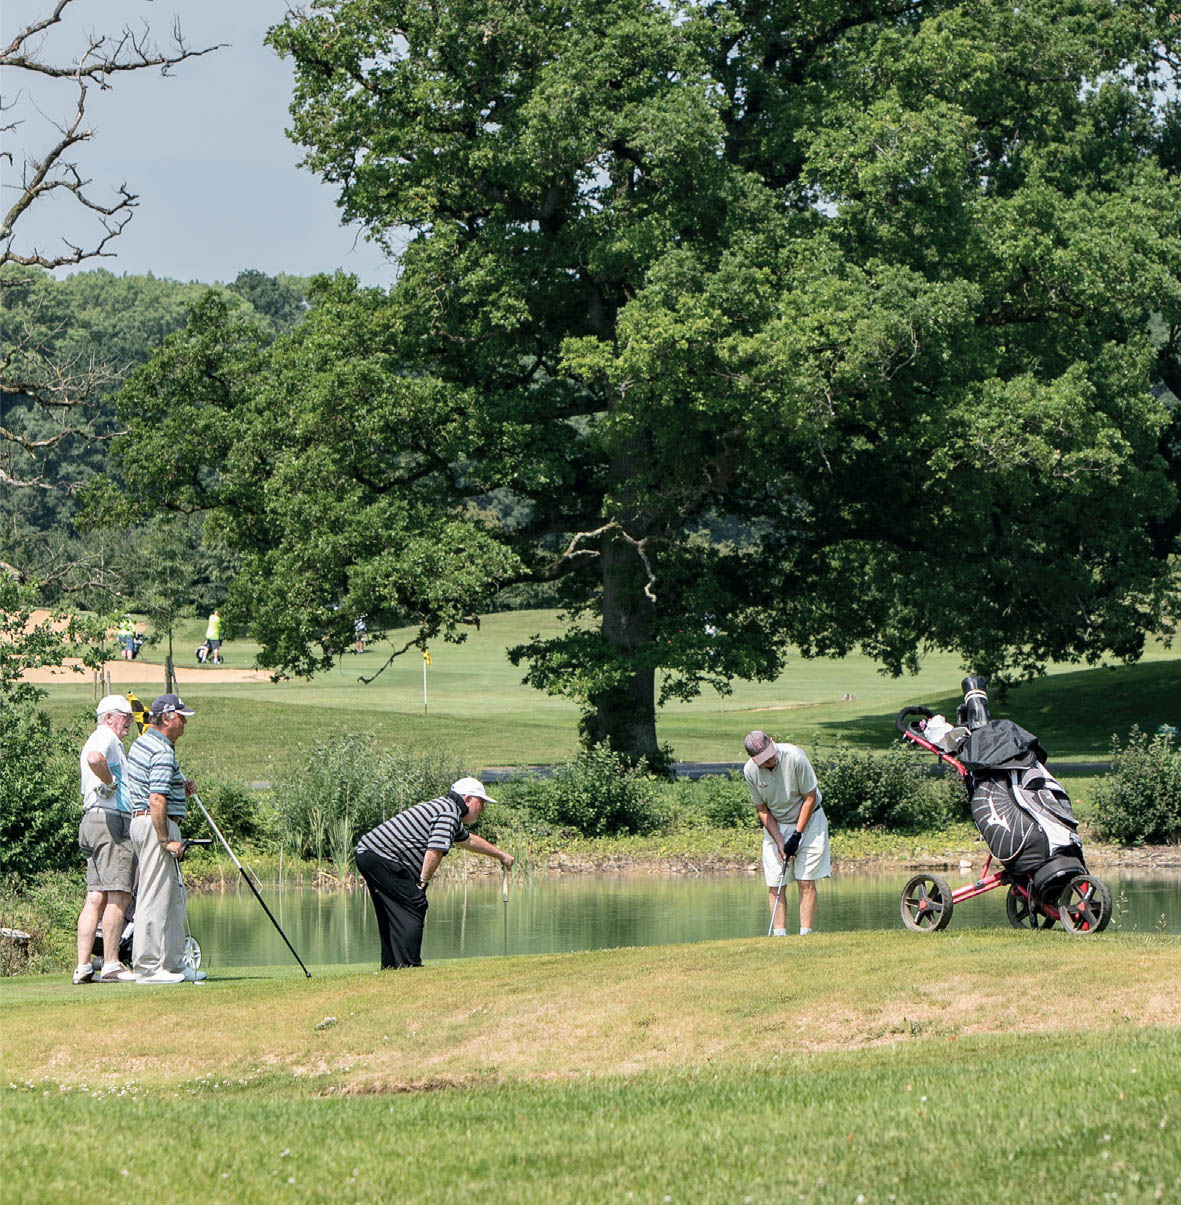 Some golfers on a green in front of a pond and a oak tree.